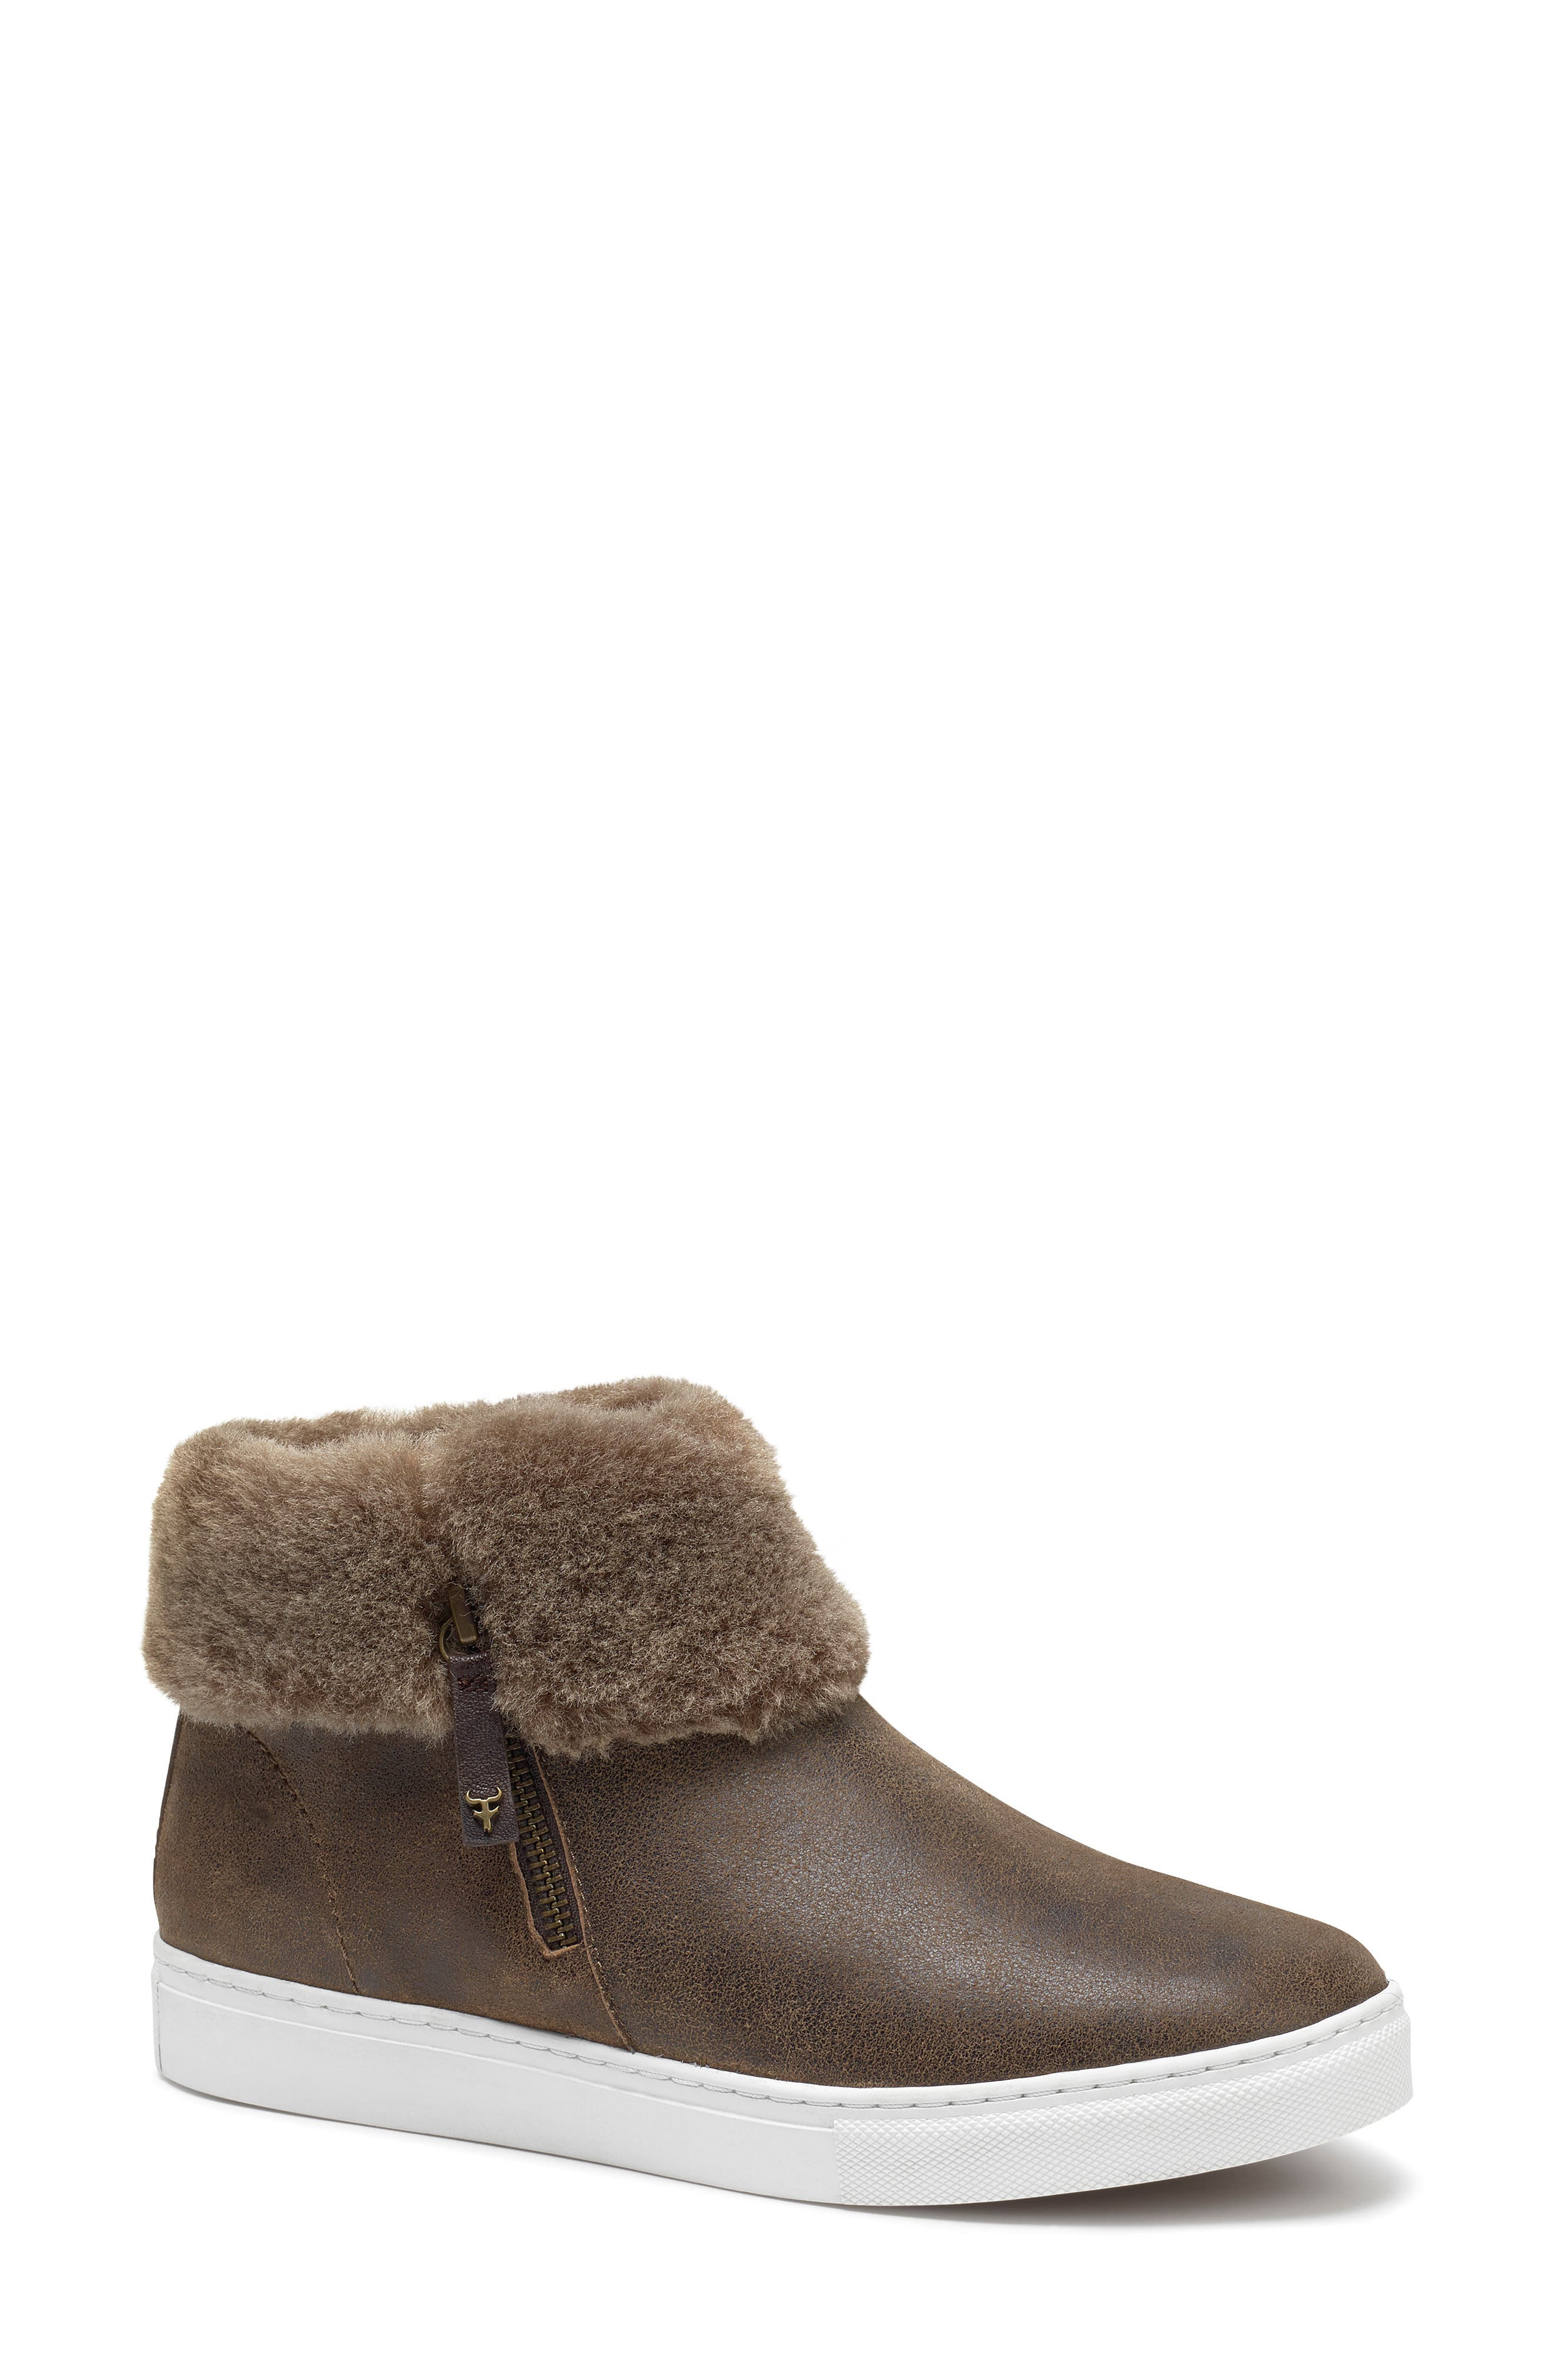 TRASK Lexi Genuine Shearling Sneaker, Main, color, BROWN LEATHER